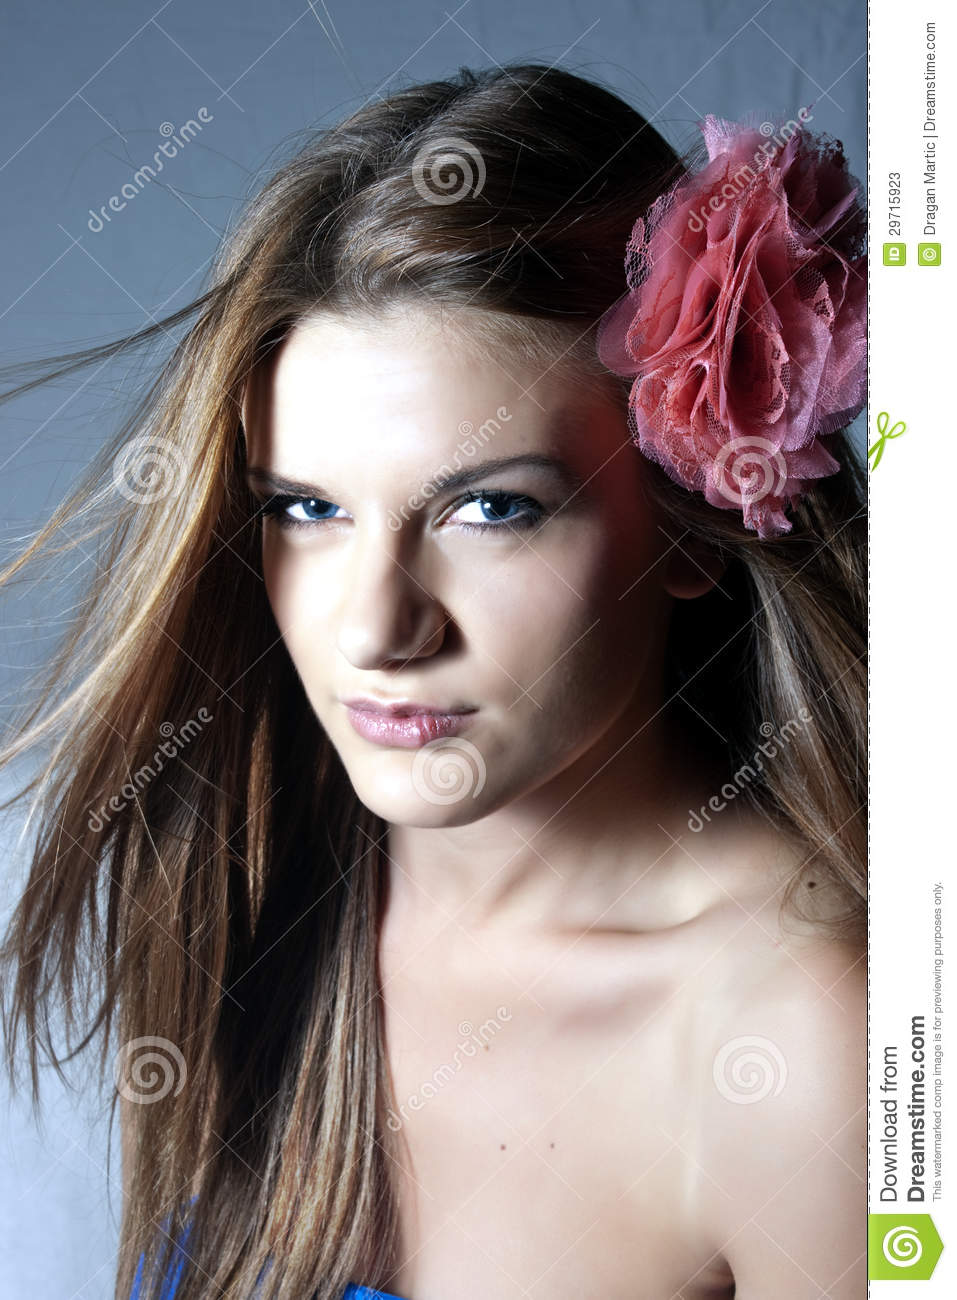 stock images pretty girl flipping hair image